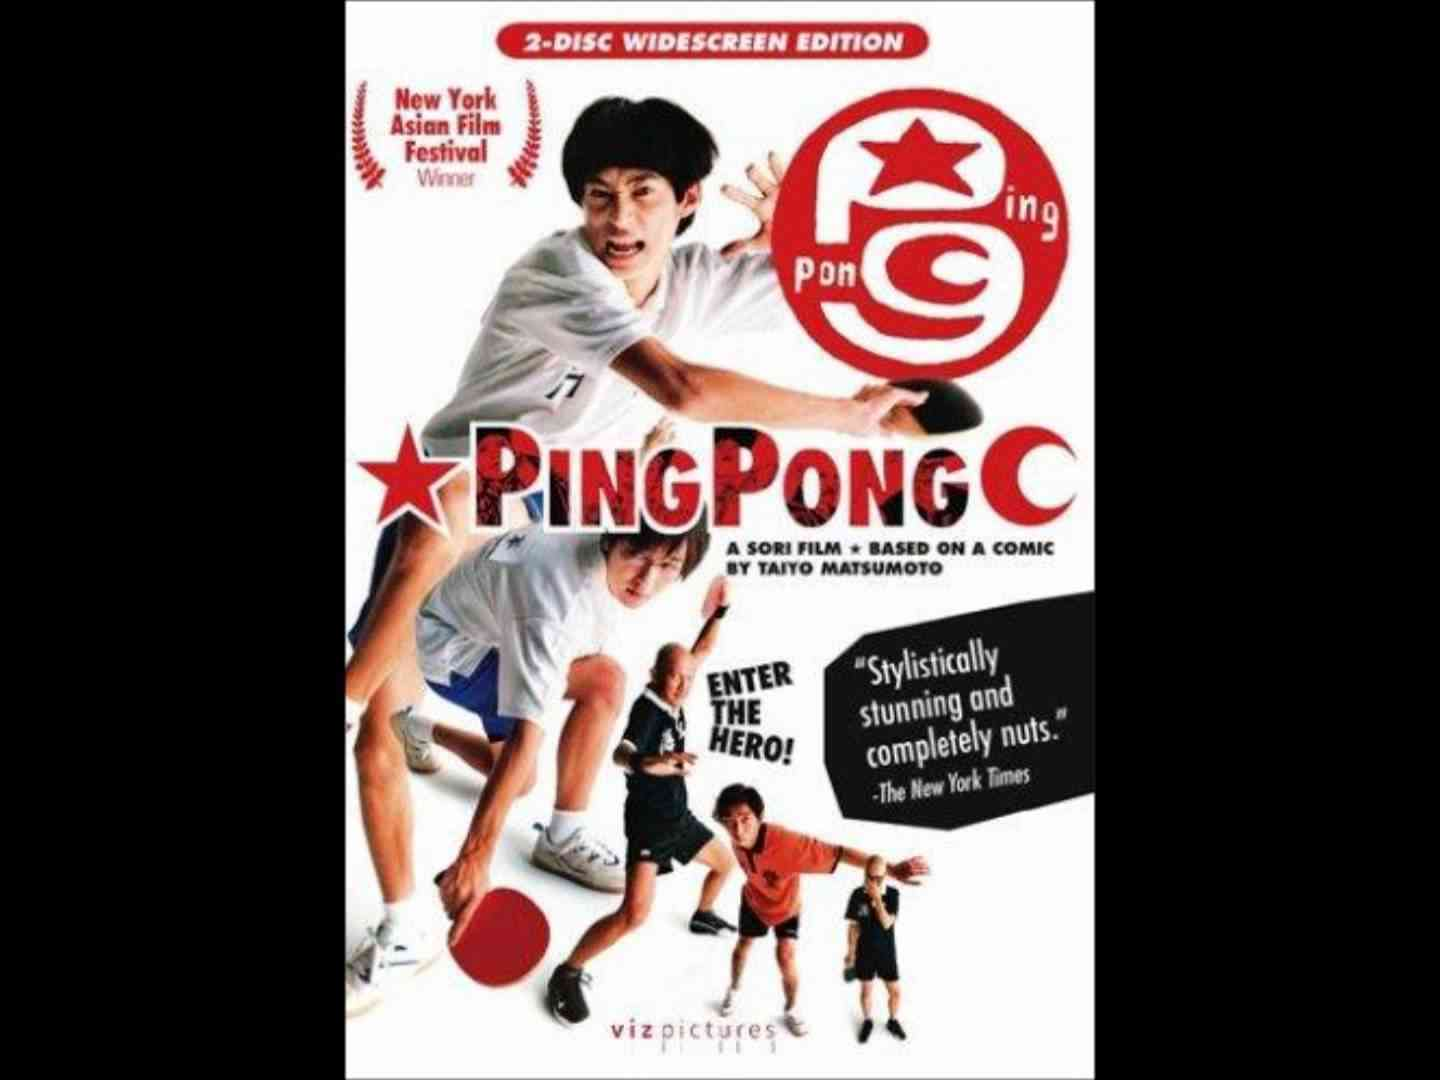 Ping Pong Original Soundtrack - YUMEGIWA LAST BOY - Supercar - YouTube